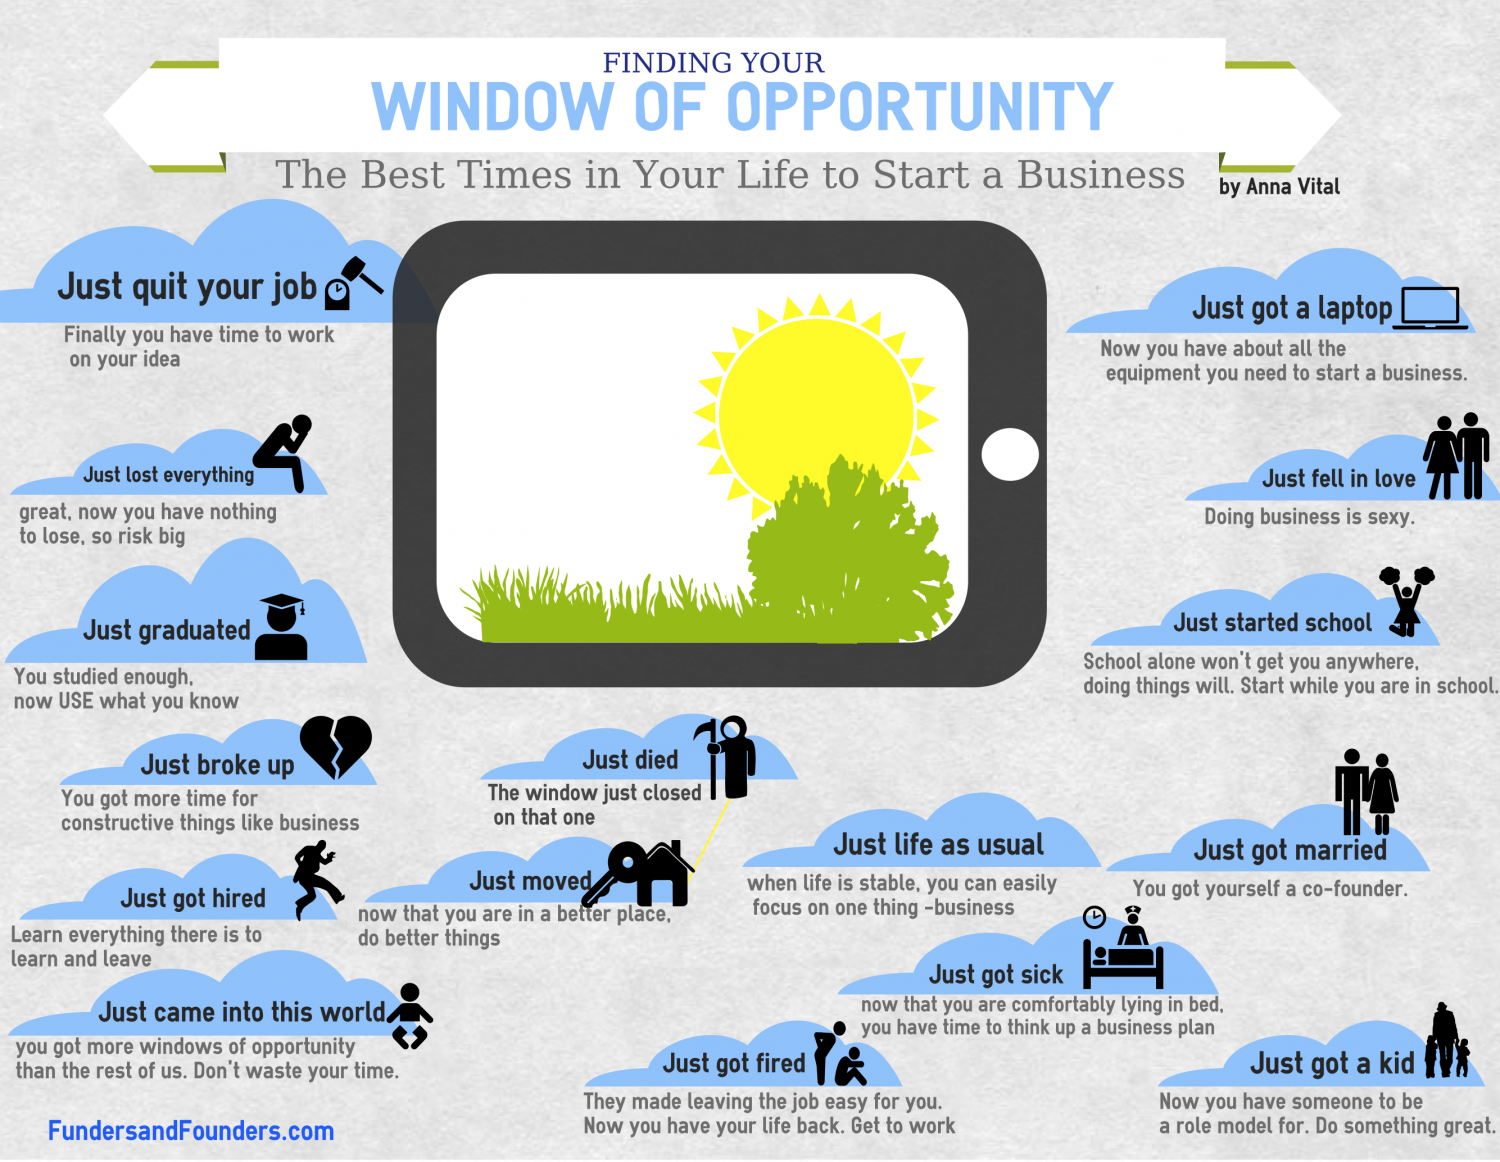 Finding the Window of Opportunity Infographic